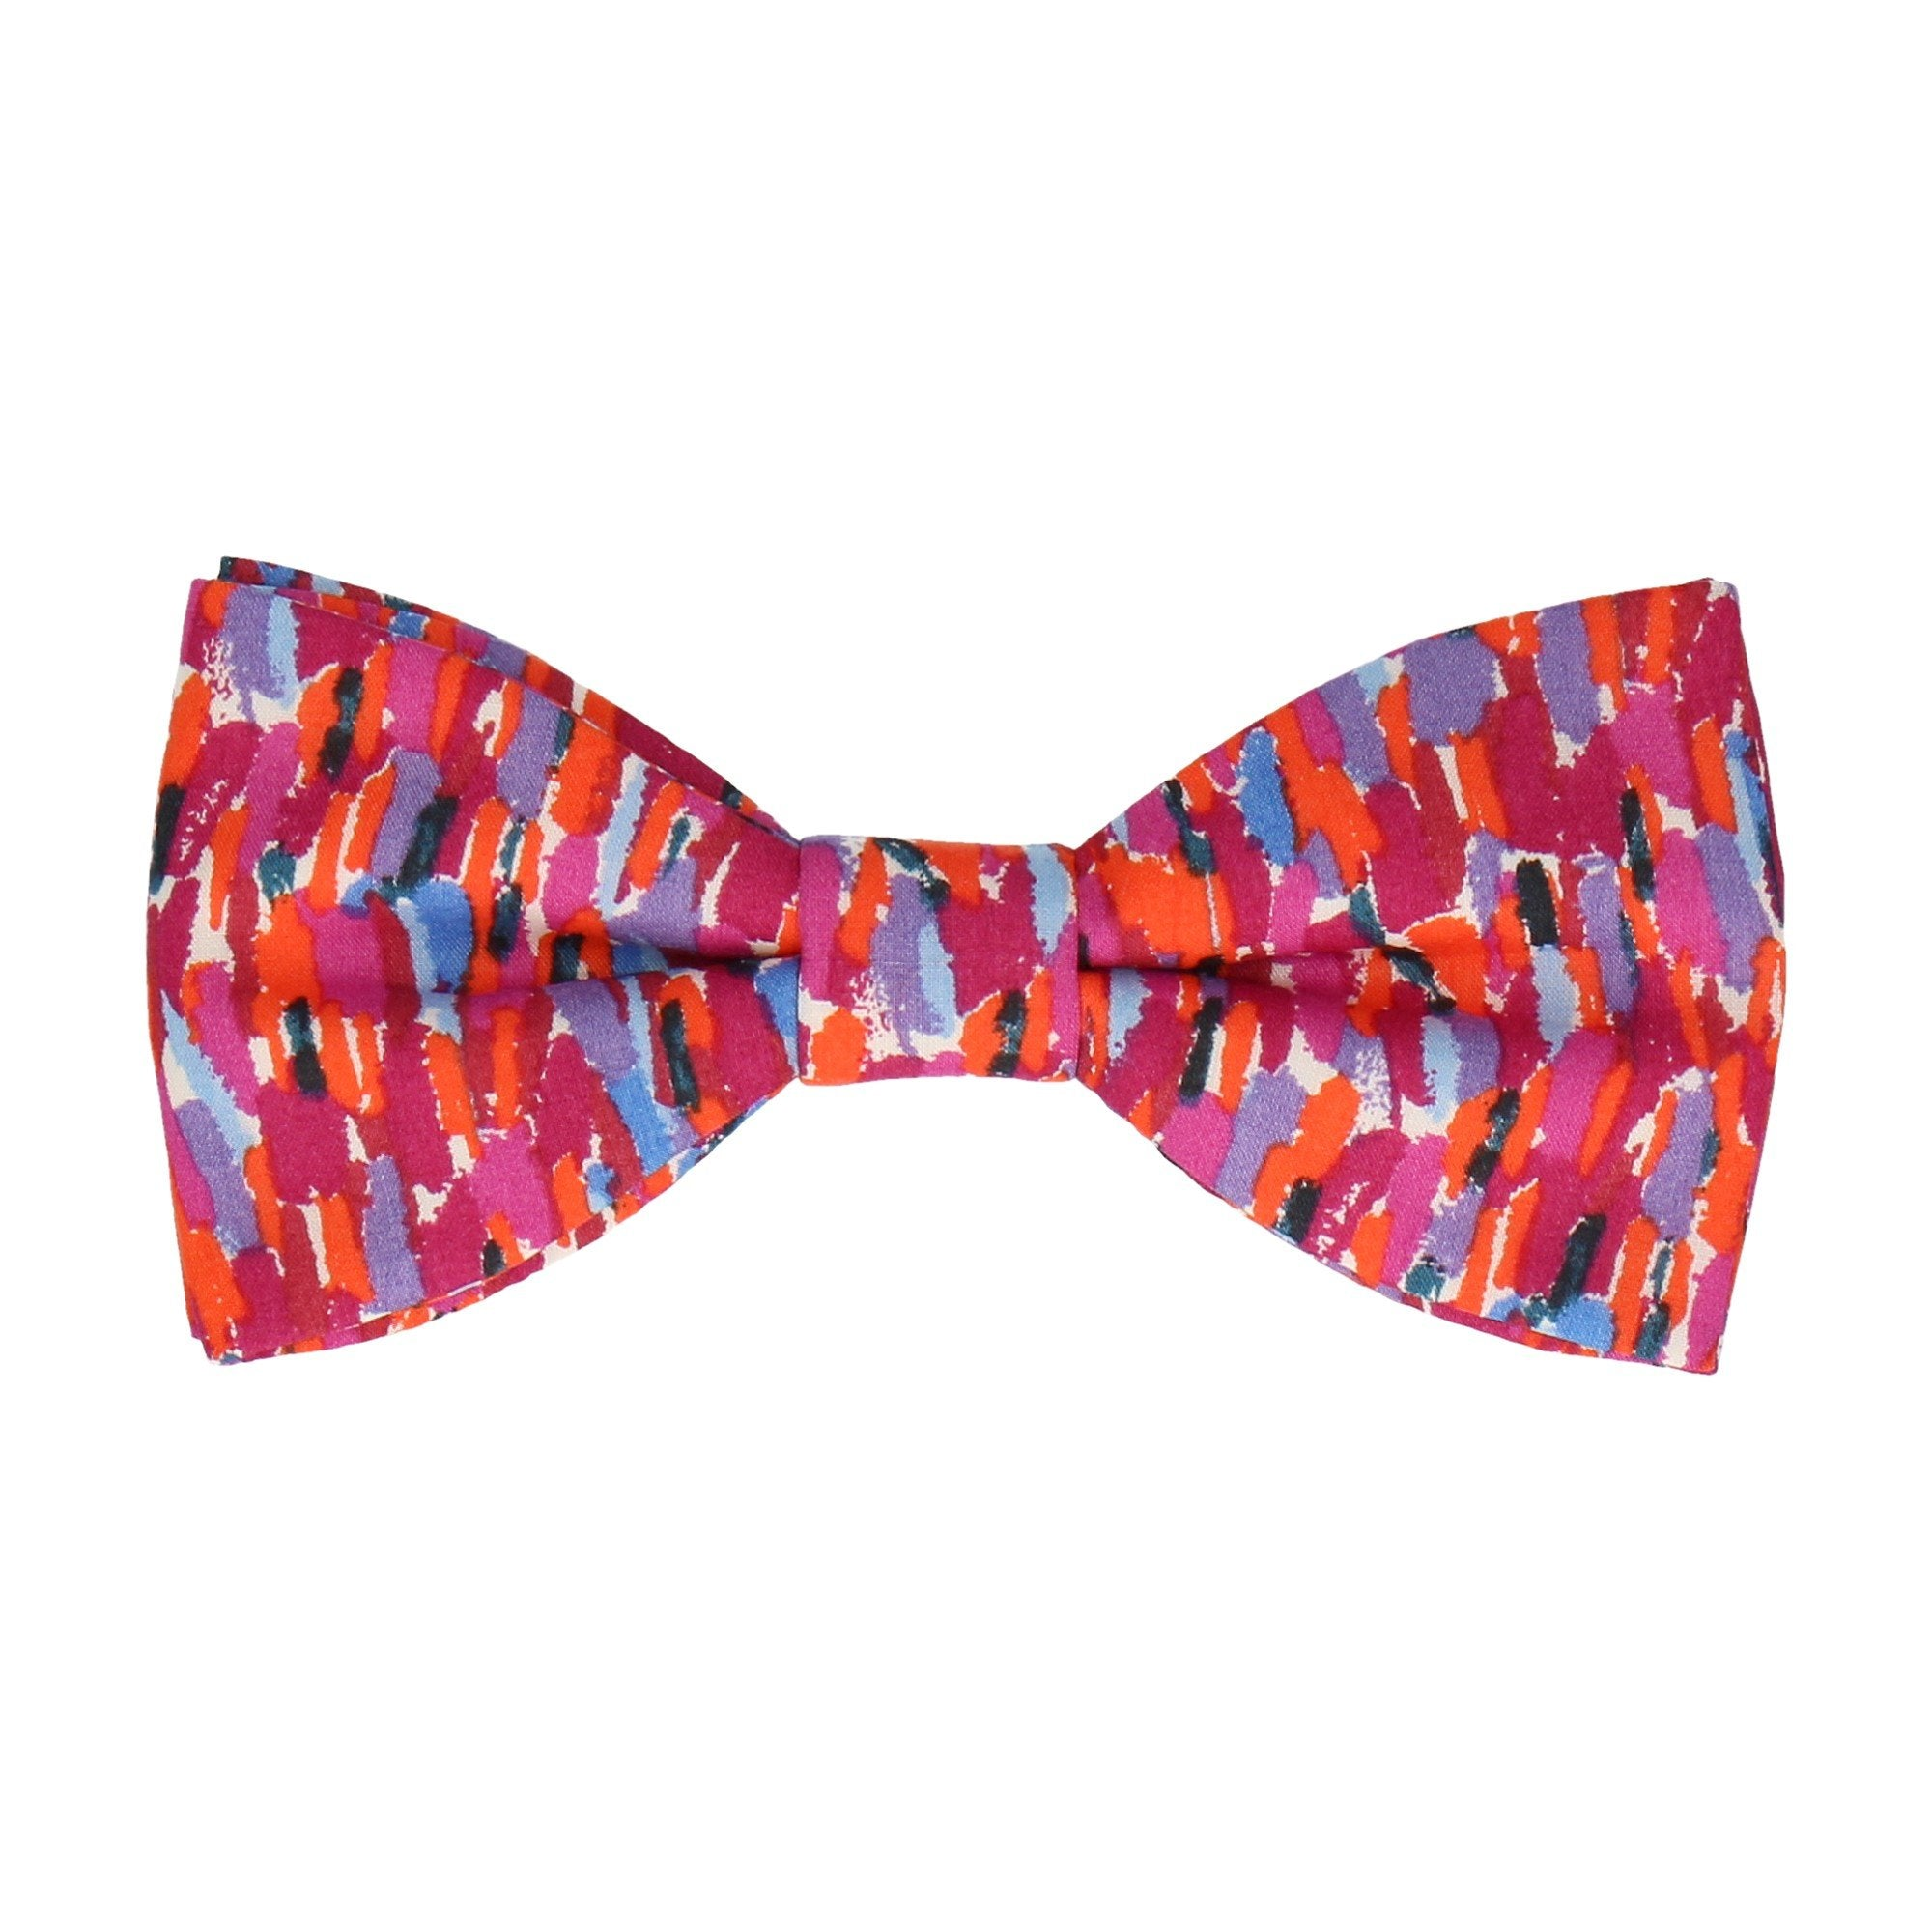 Meadow Rain in Red Bow Tie